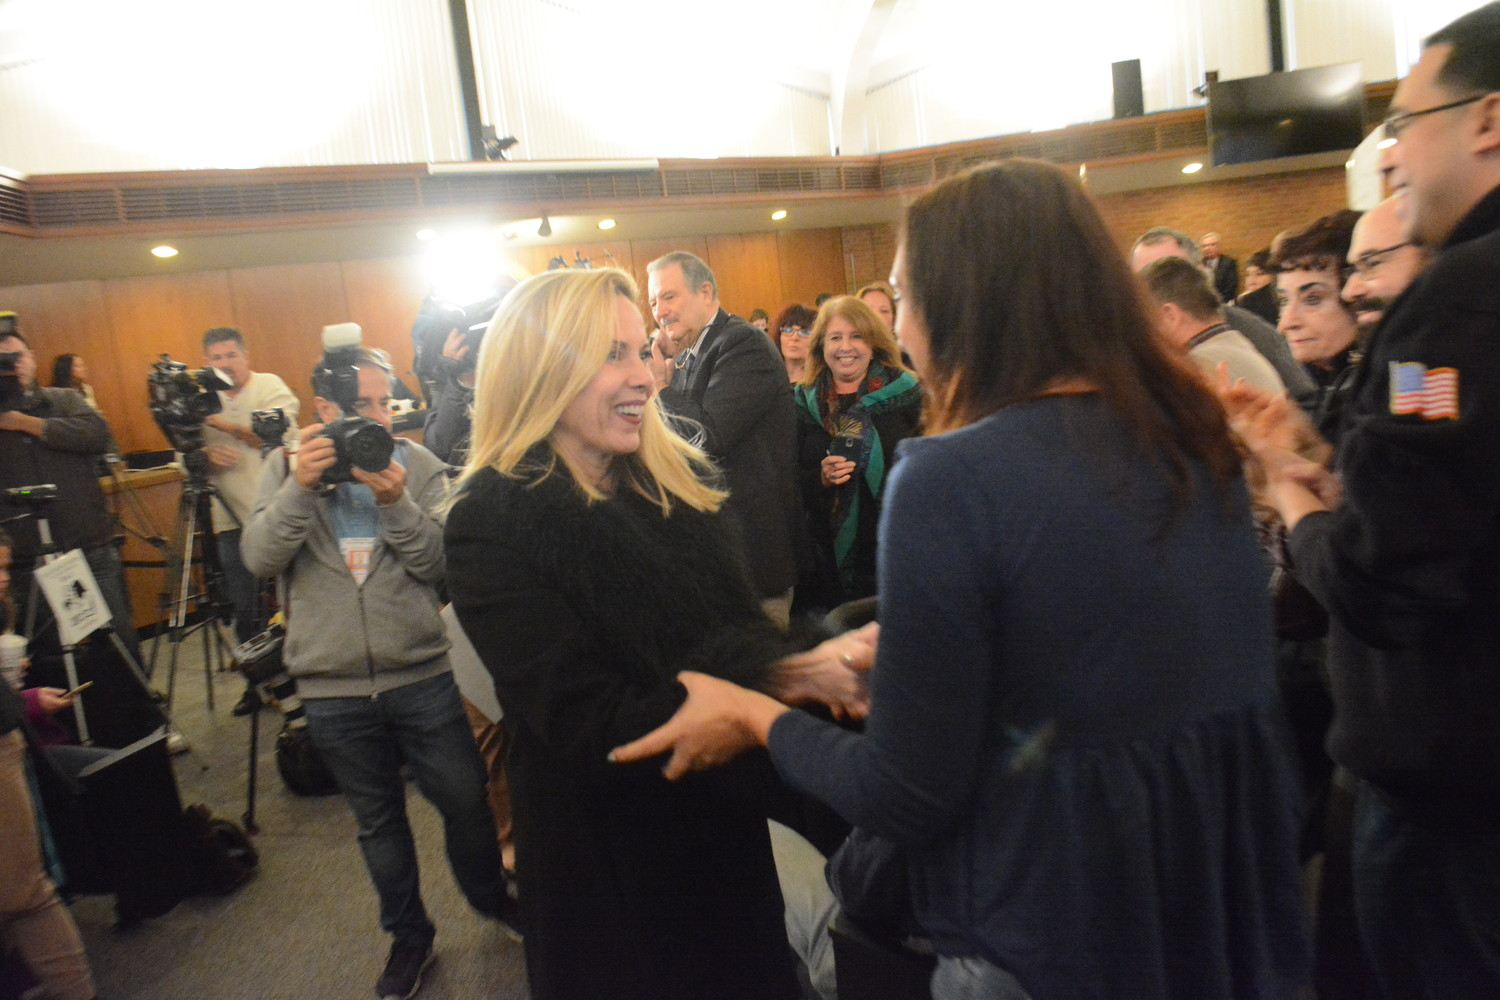 Town Supervisor-elect, Laura Gillen, was greeted by a standing ovation as she walked into the Hempstead Town Board Meeting on Tues. Dec. 12.